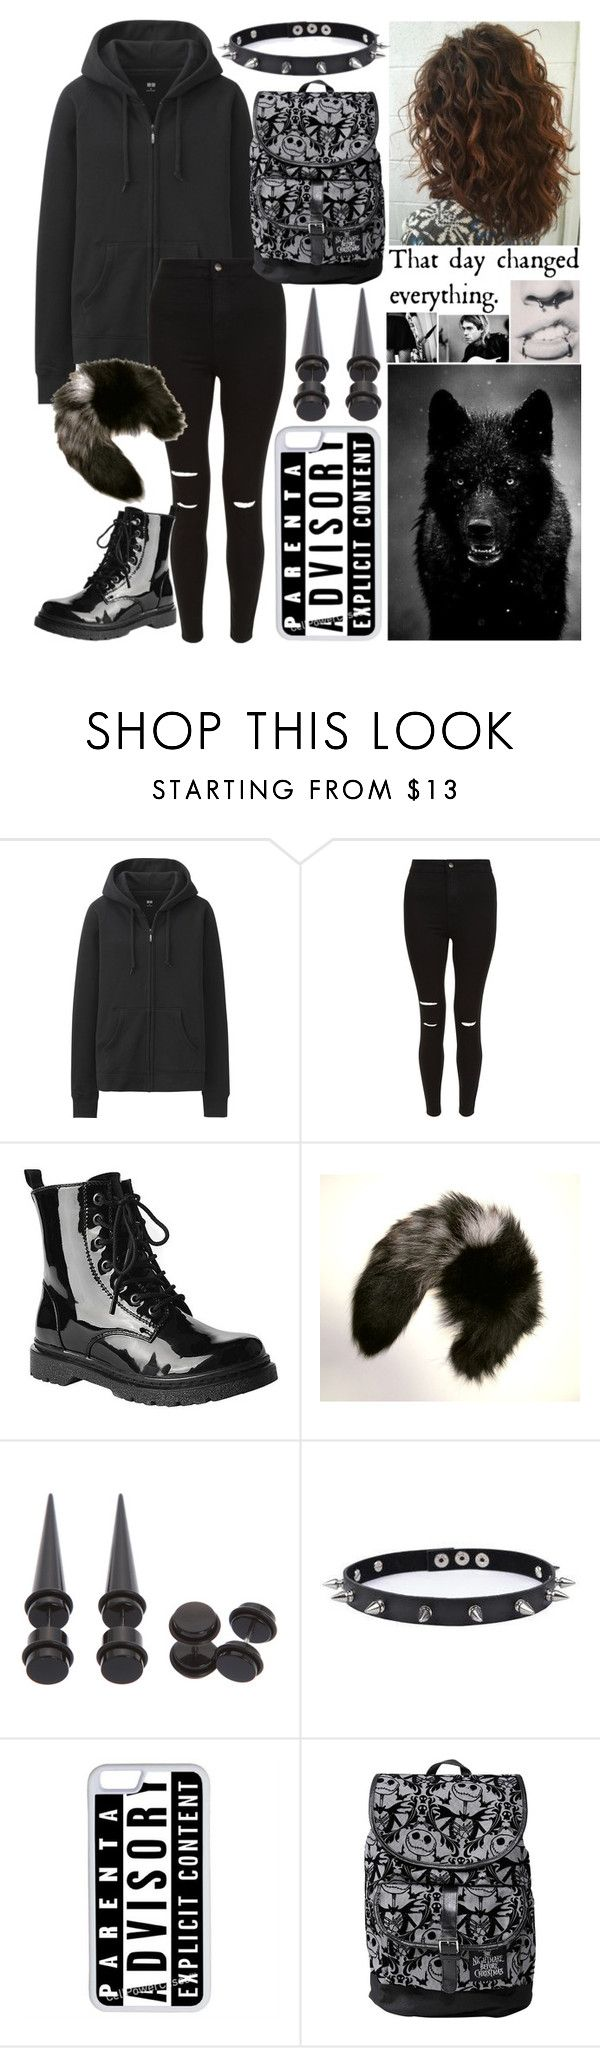 """""""🔪~ i'll dot your i's and cross your fvcking t's"""" by whisperwolf22 ❤ liked on Polyvore featuring Uniqlo, New Look, Gia-Mia, Maison Kitsuné, Trend Cool, CellPowerCases and Disney"""